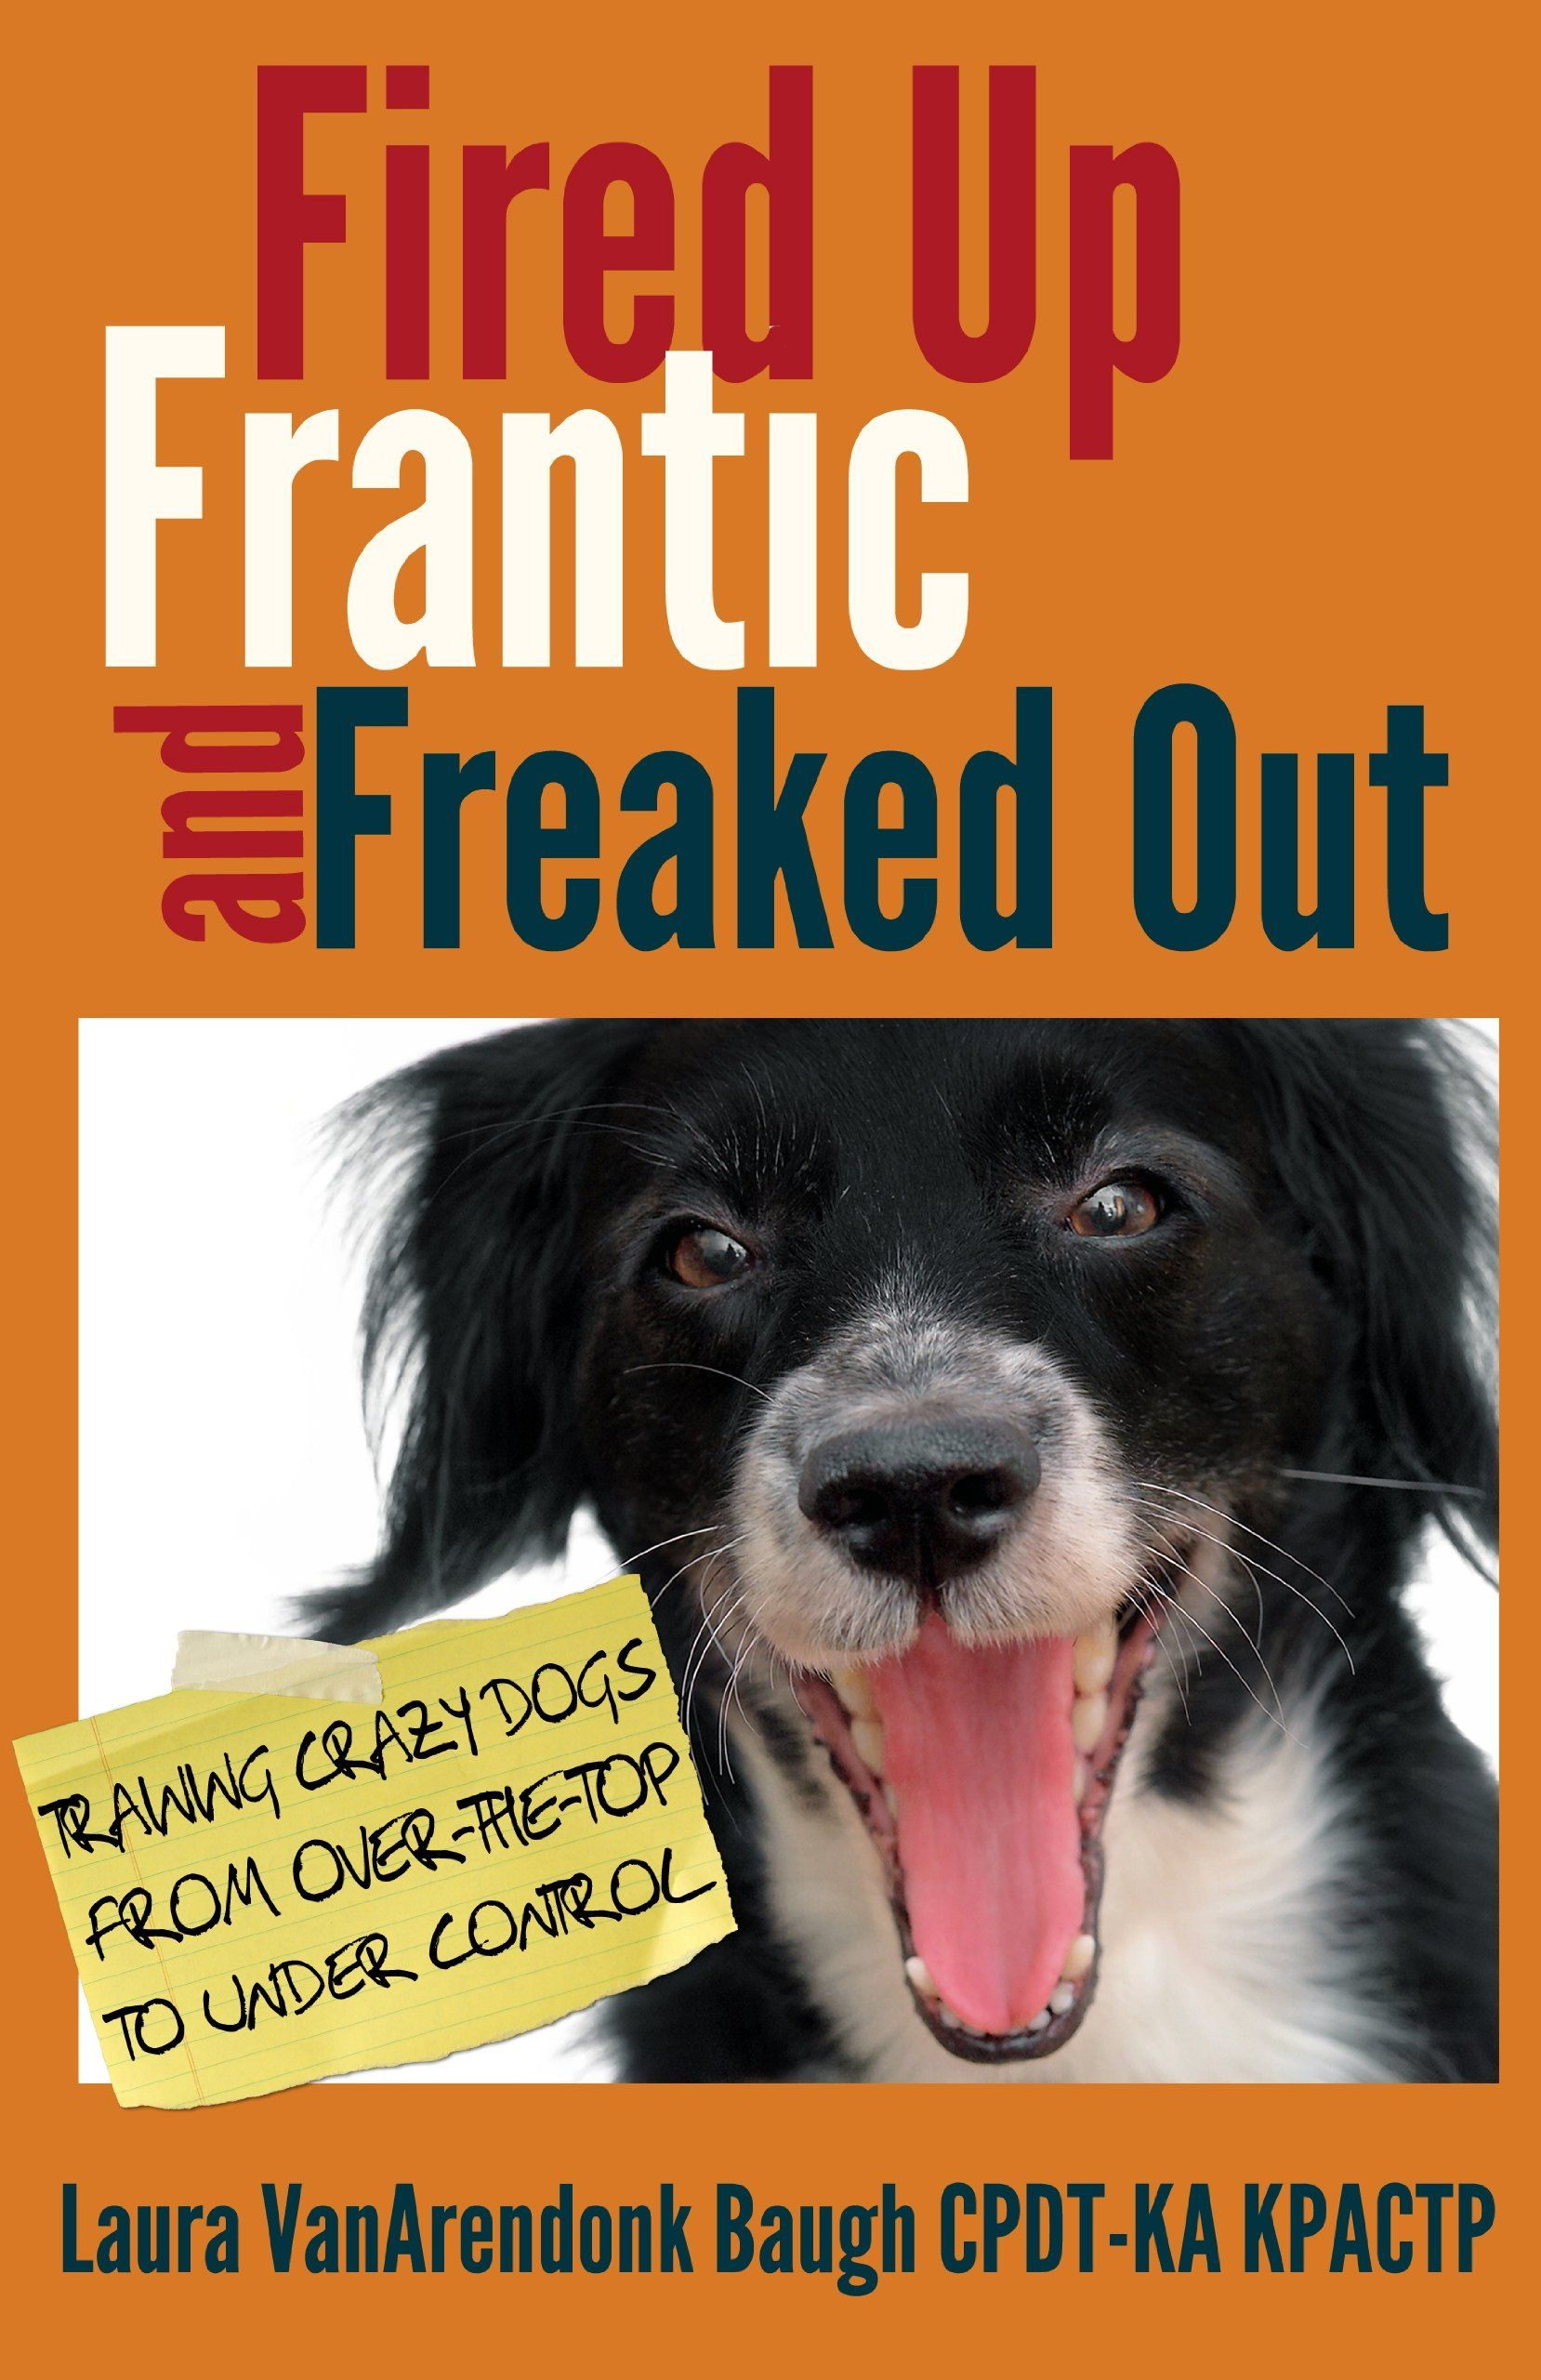 Fired Up Frantic And Freaked Out Training Crazy Dogs From Over